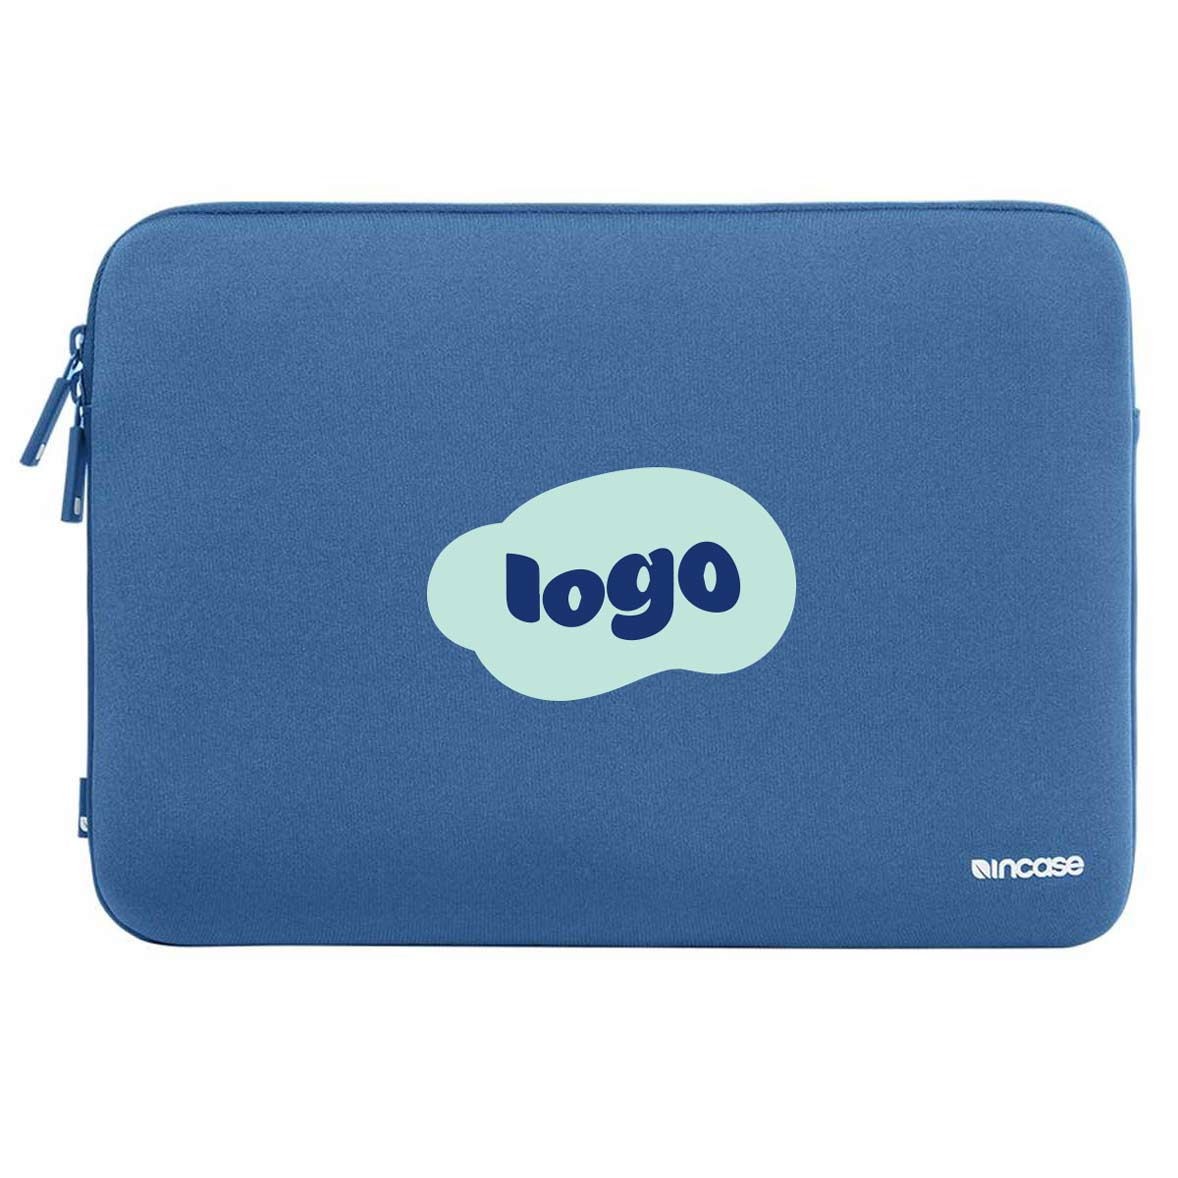 268134 15 classic laptop sleeve two color transfer 7 wide